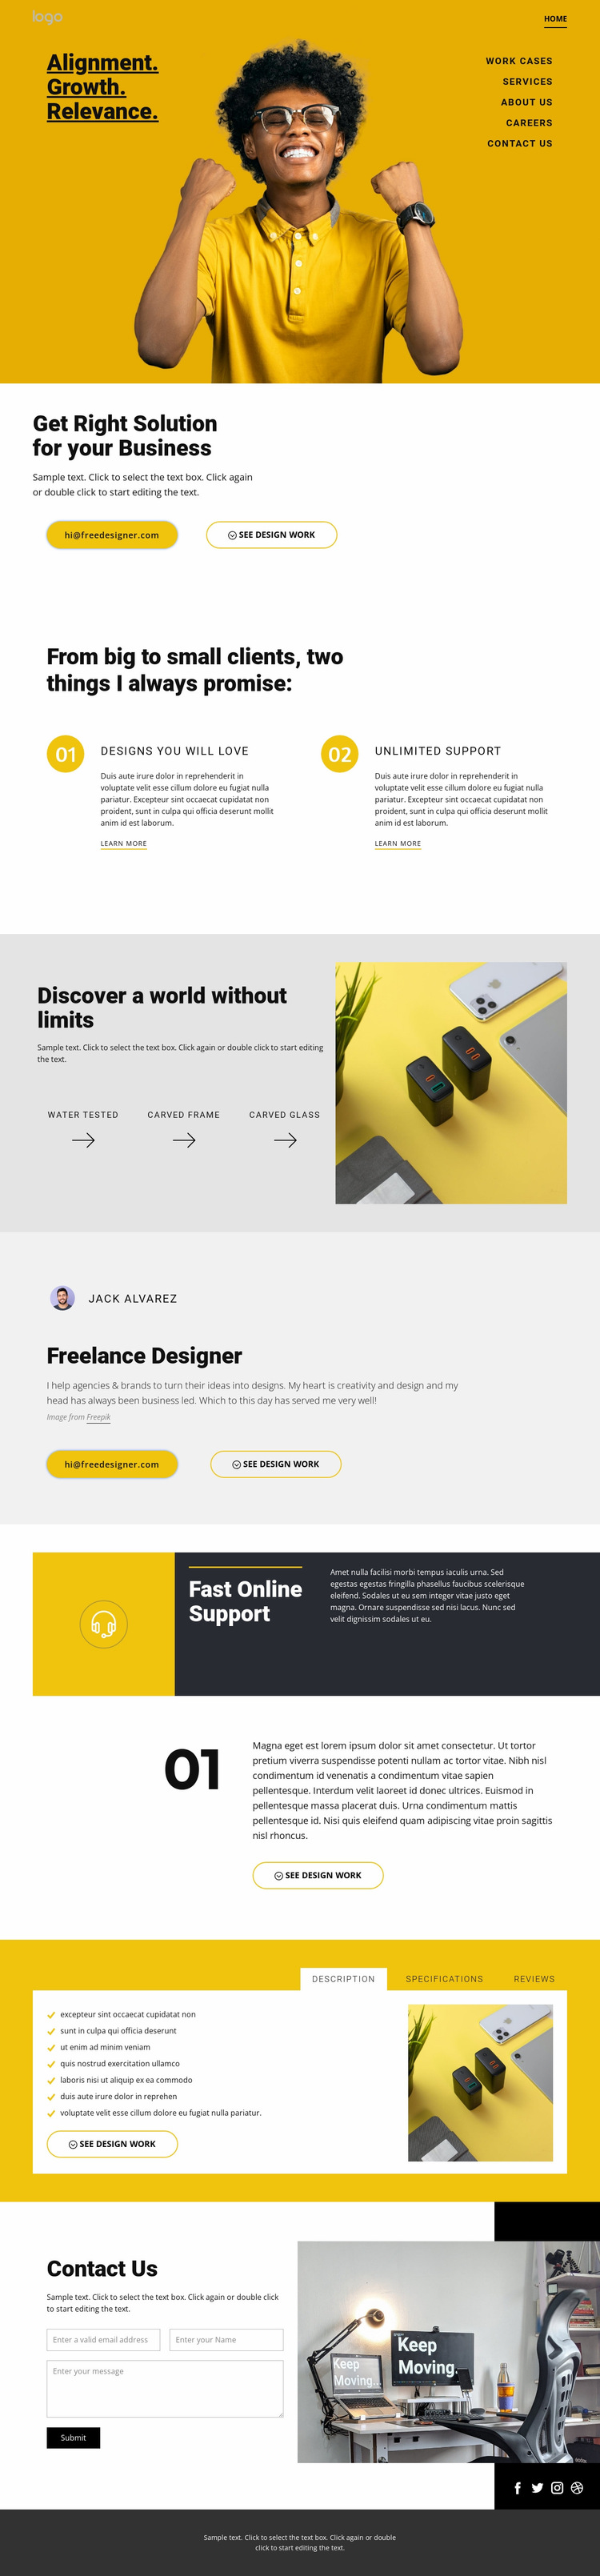 Quality is our goal Website Builder